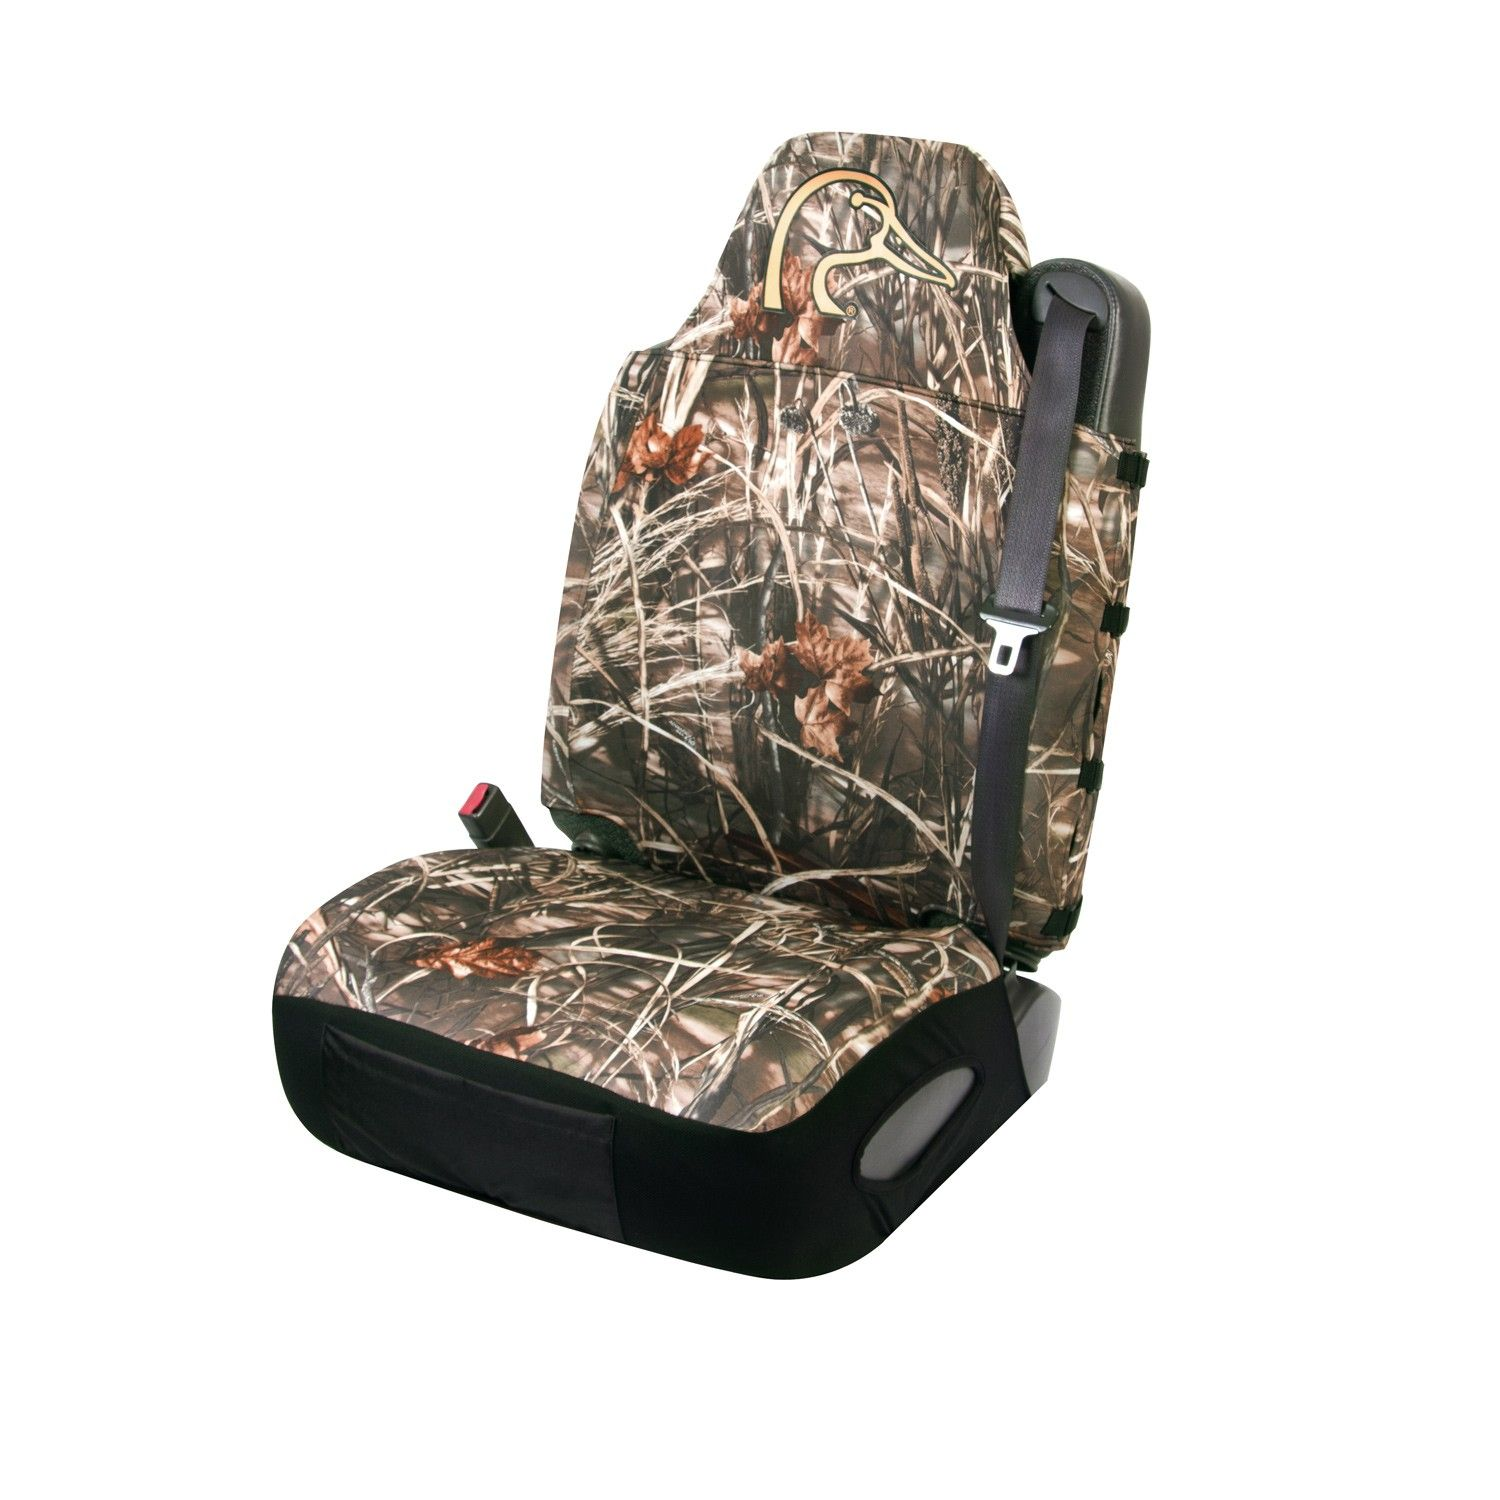 Neoprene Ducks Unlimited Camo Seat Cover Camo Truck